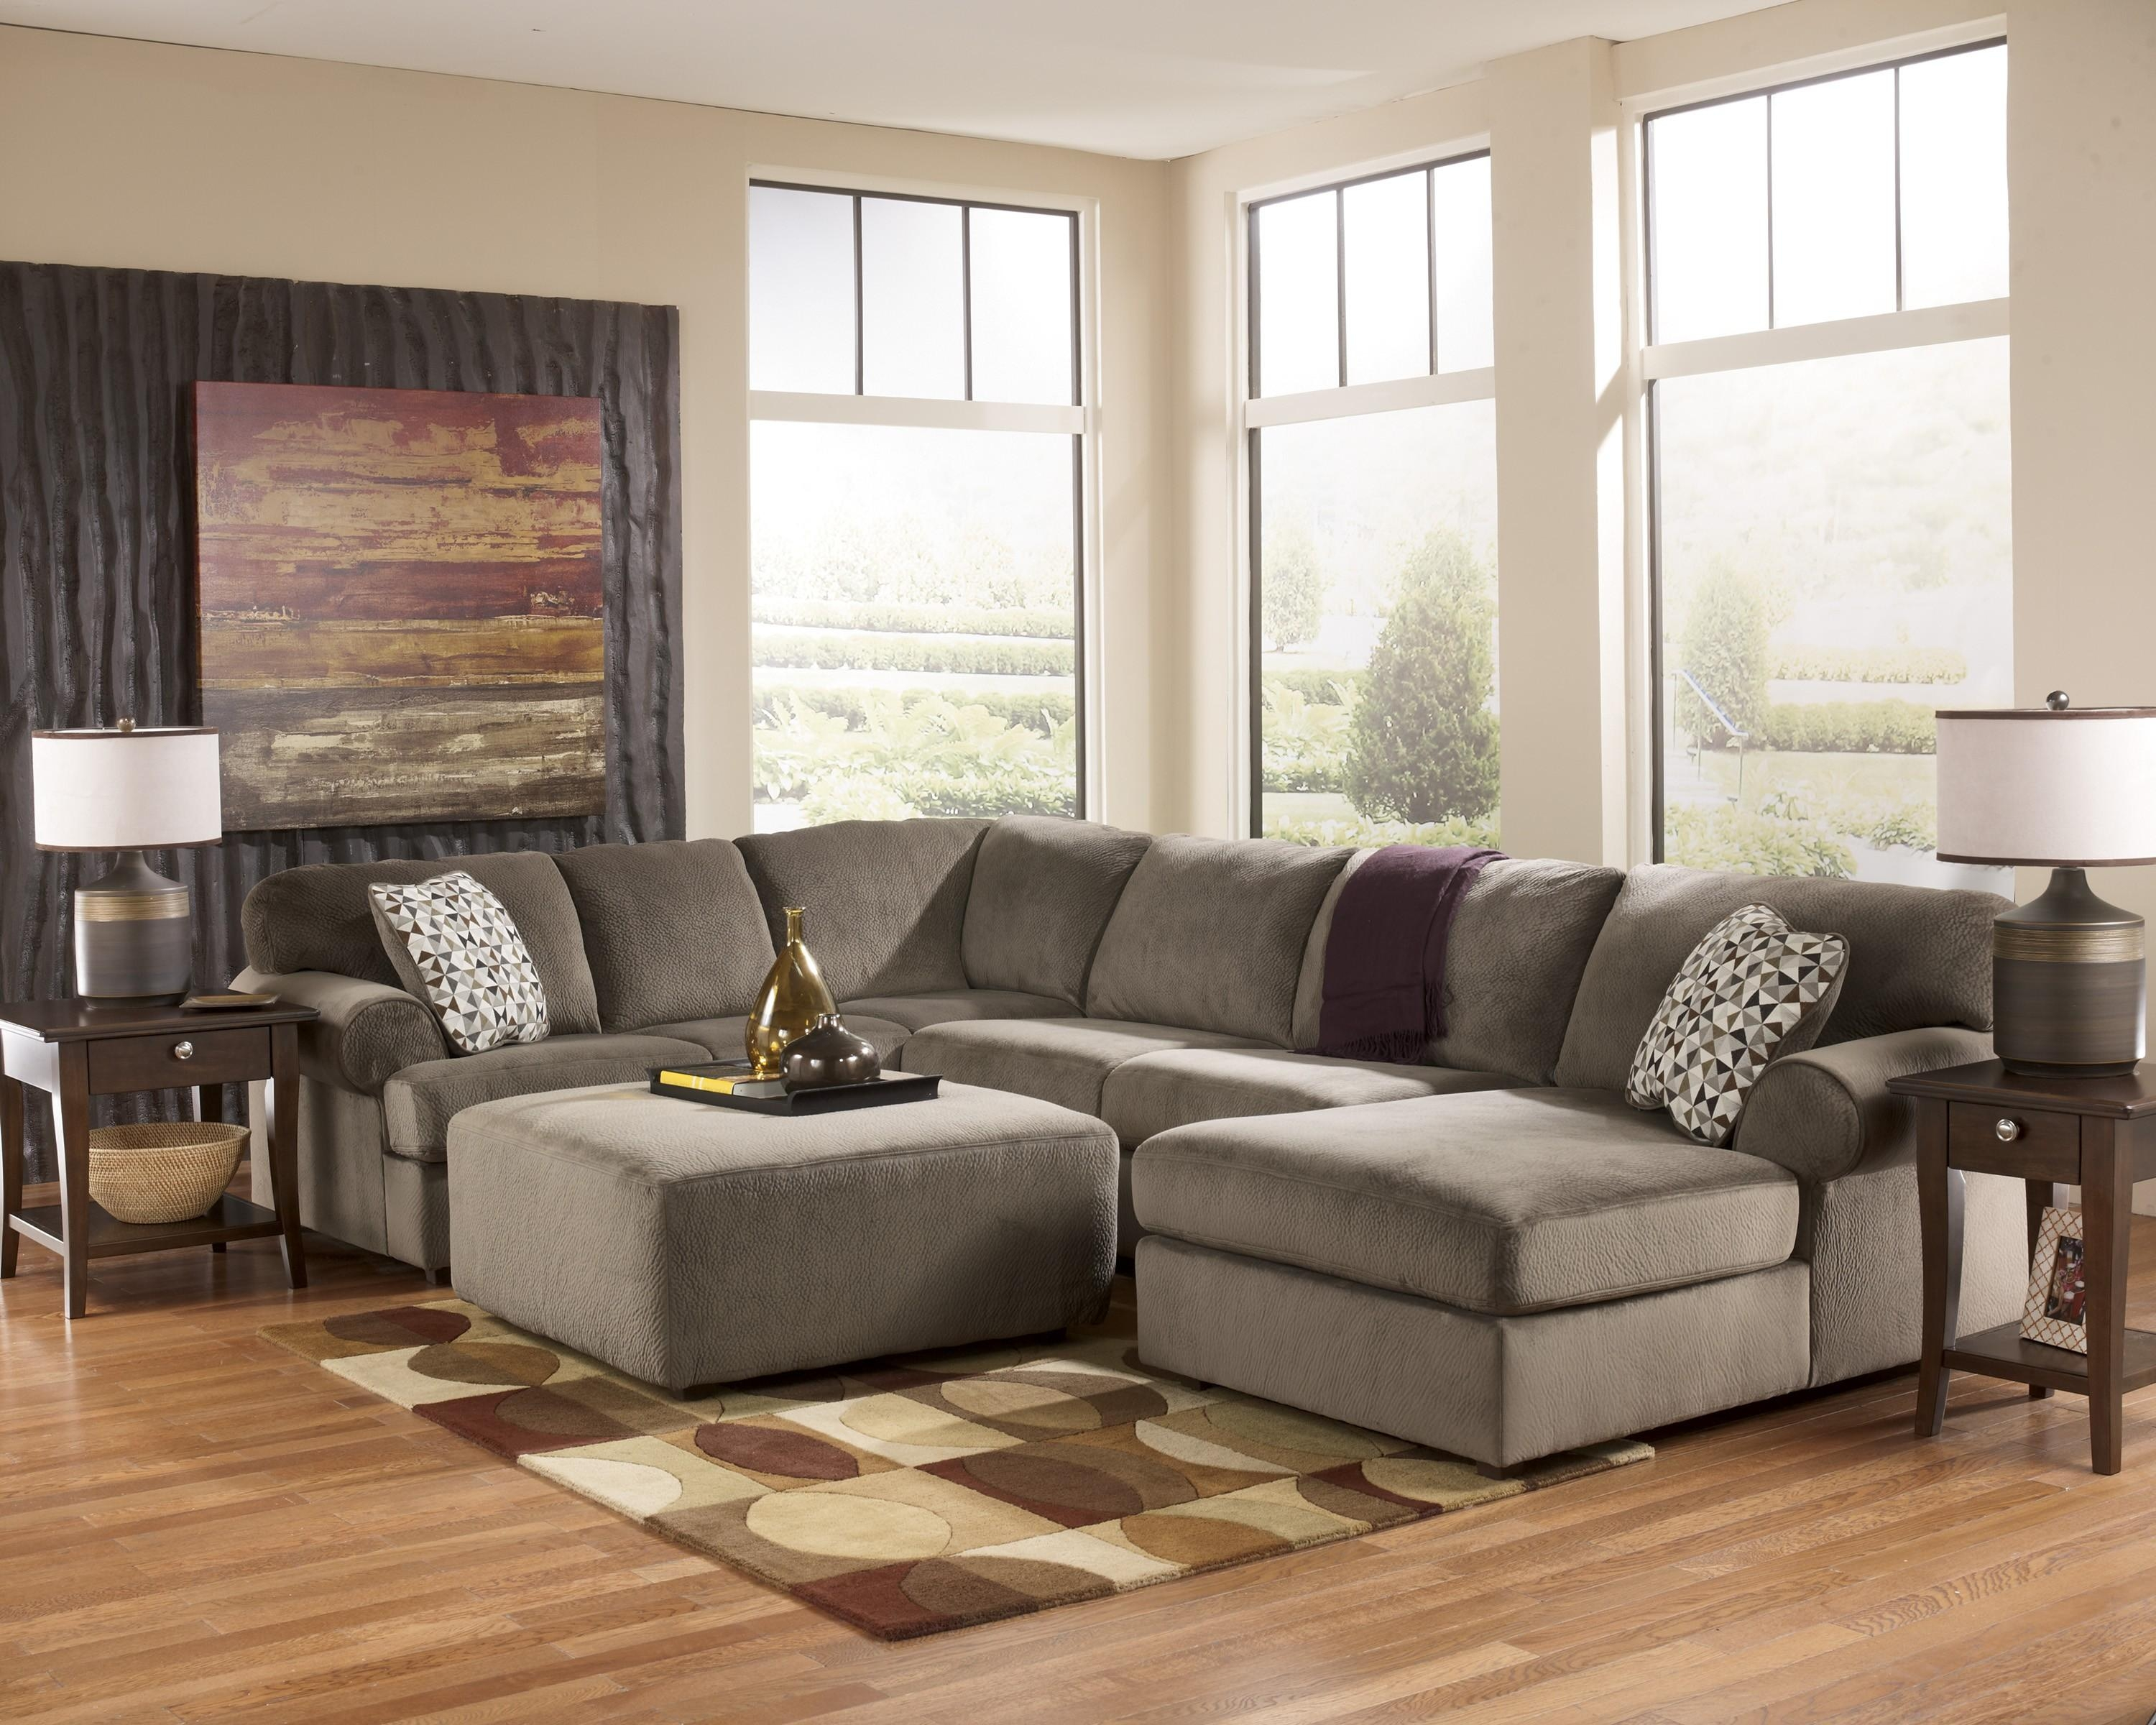 Sofas: Oversized Sofas   Sectional Couch For Sale   Oversized Sofa In Big Sofa Chairs (Image 19 of 20)